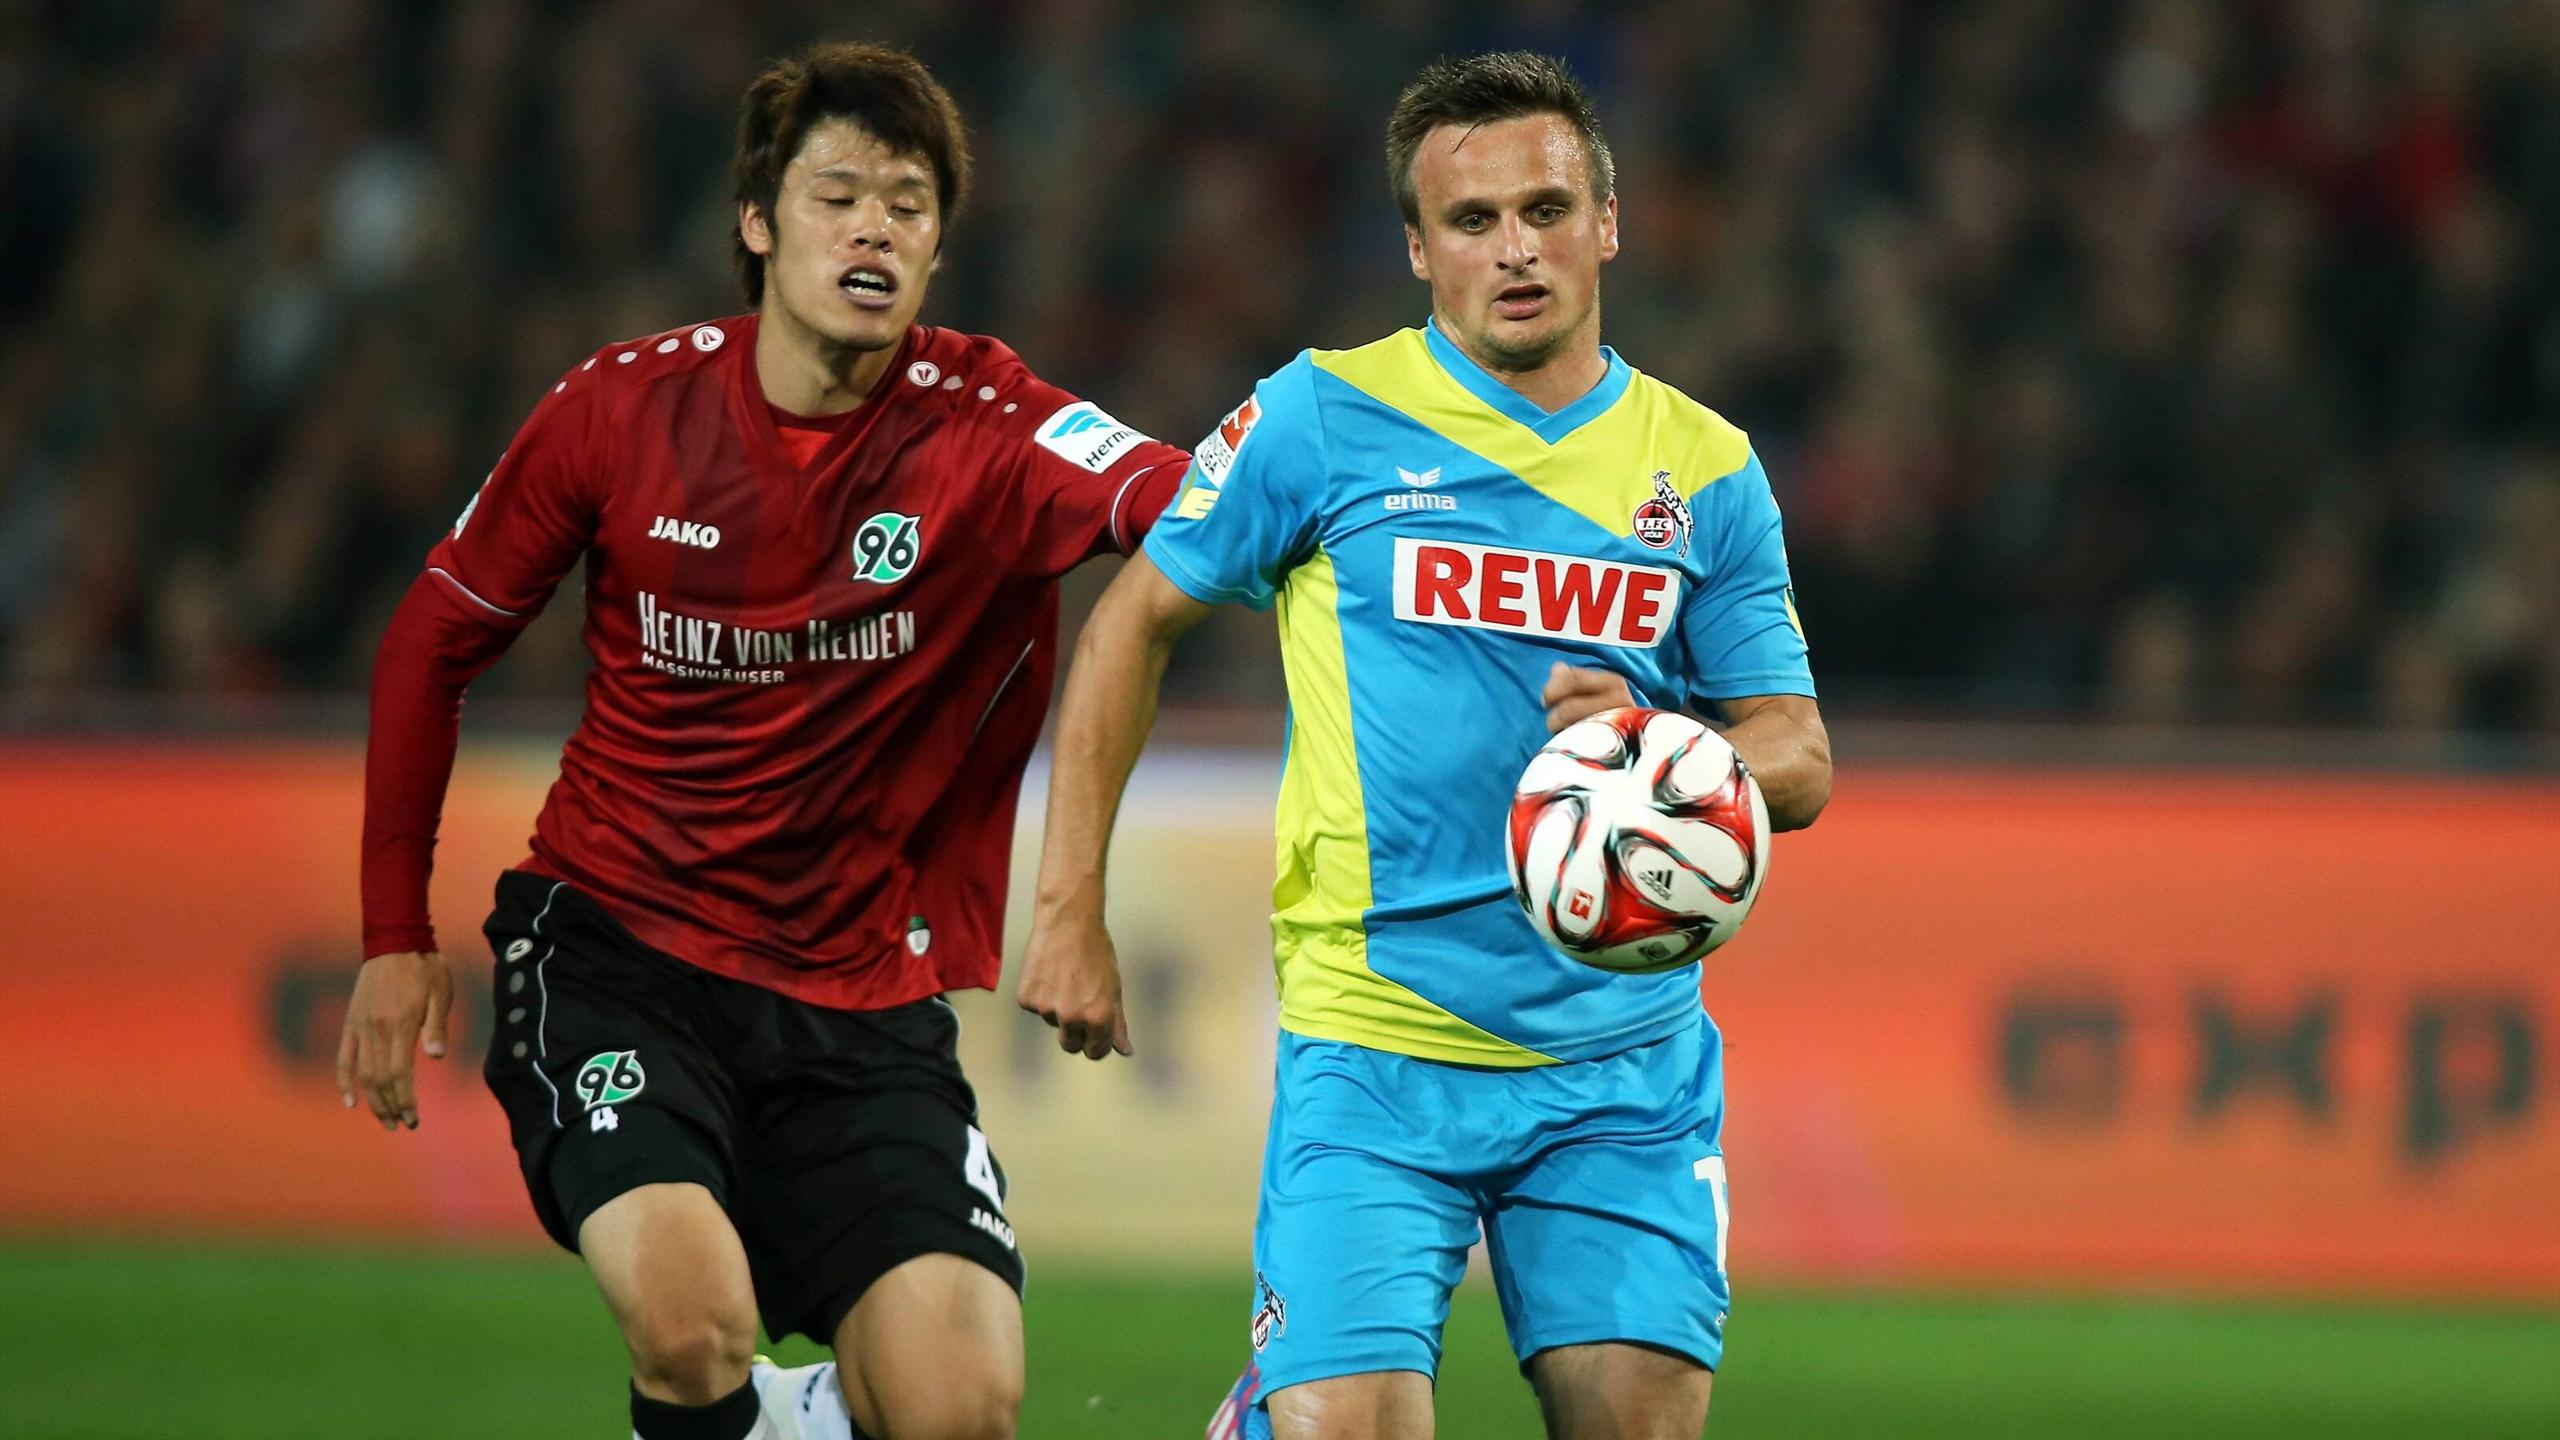 Video: Hannover 96 vs Cologne